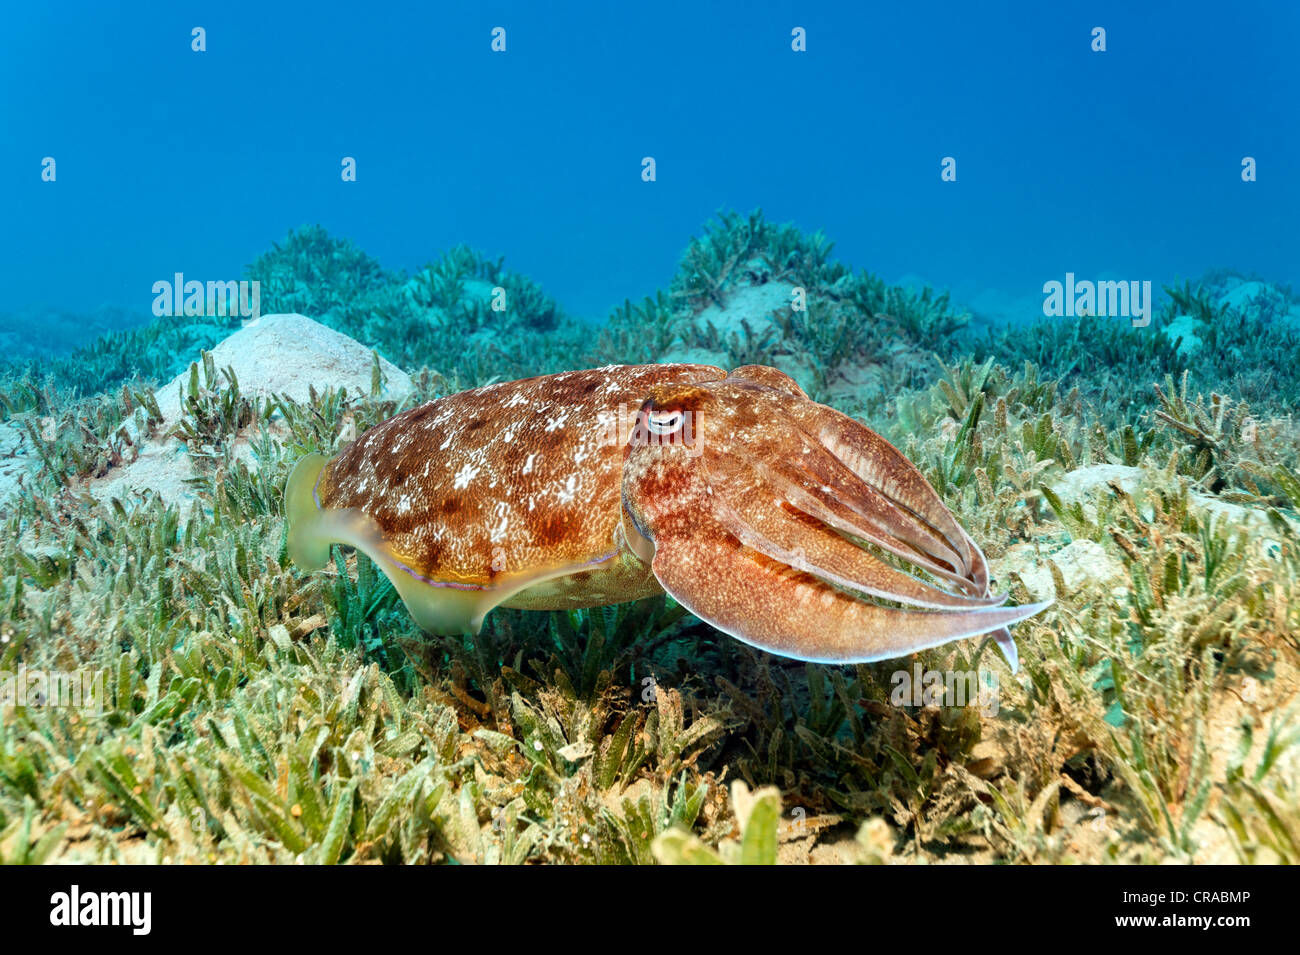 Broadclub Cuttlefish (Sepia latimanus) above sea weed, Makadi Bay, Hurghada, Egypt, Red Sea, Africa - Stock Image